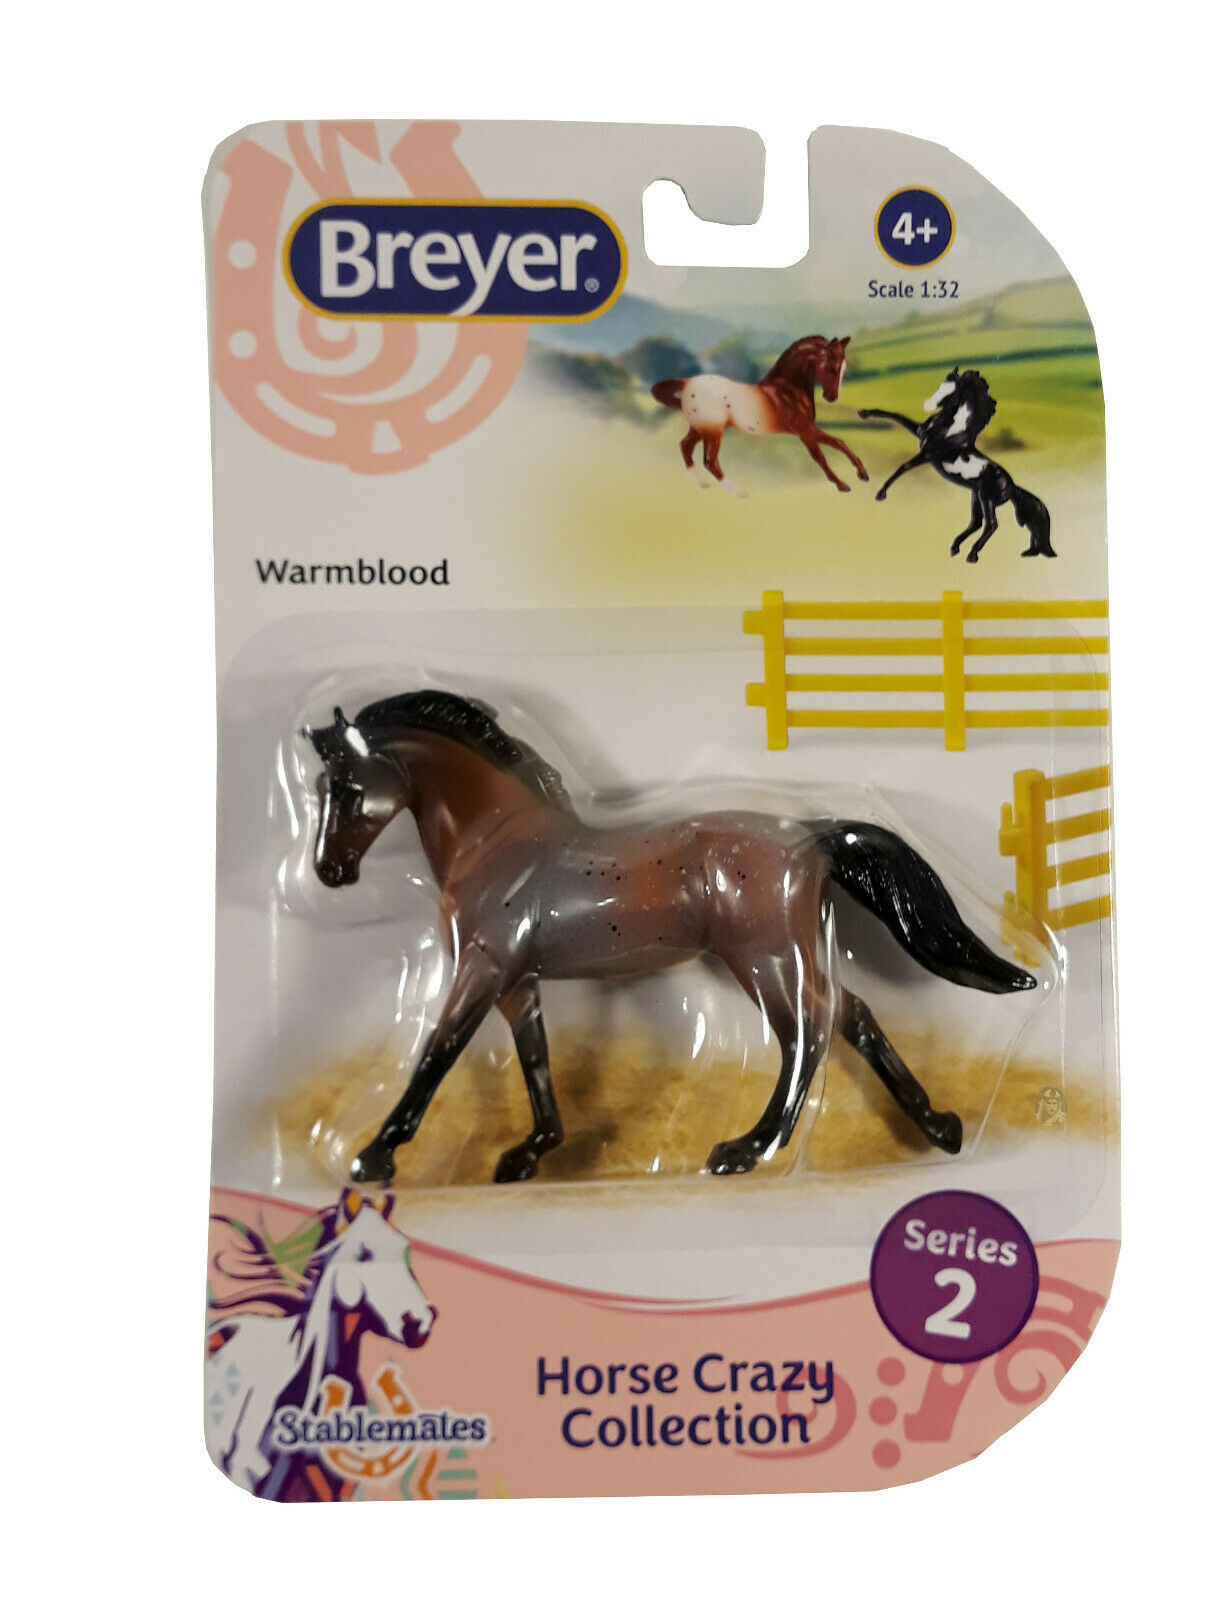 Breyer Stablemates Horse Crazy: Warmblood Figurine New in Package - $9.88